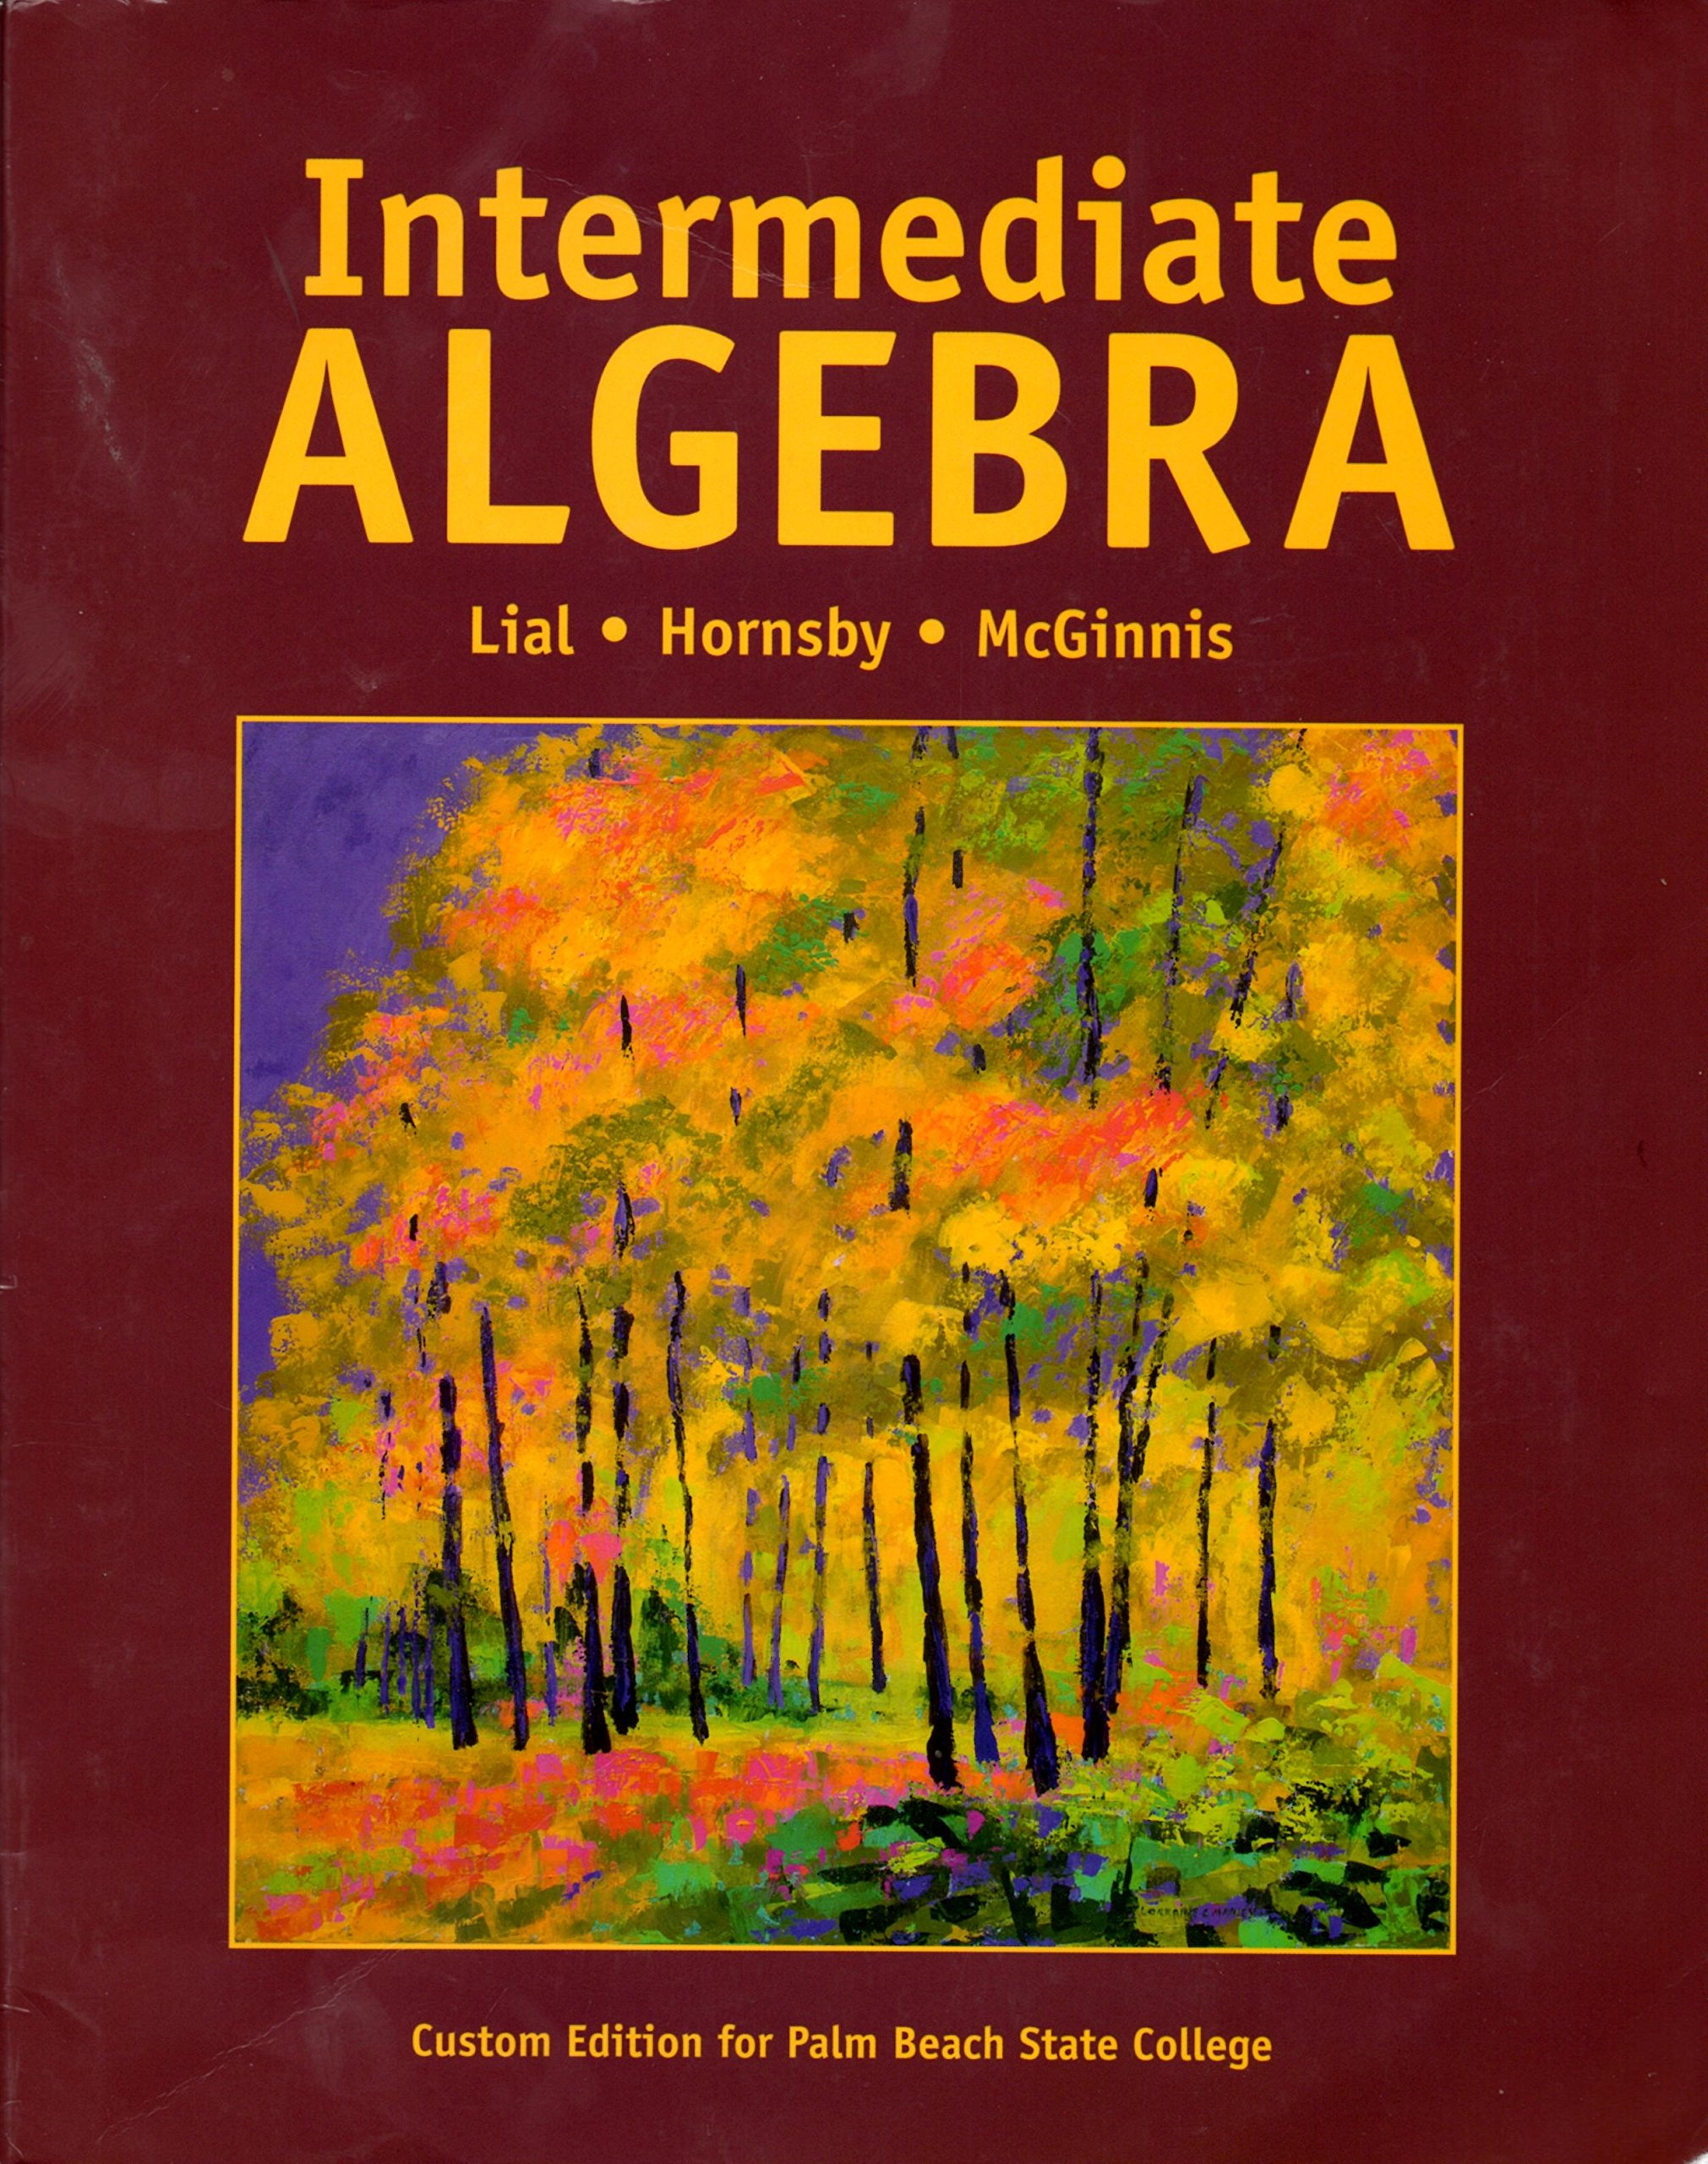 Intermediate algebra custom edition for palm beach state college intermediate algebra custom edition for palm beach state college hornsdy mcginnis lial 9781269350198 amazon books fandeluxe Image collections